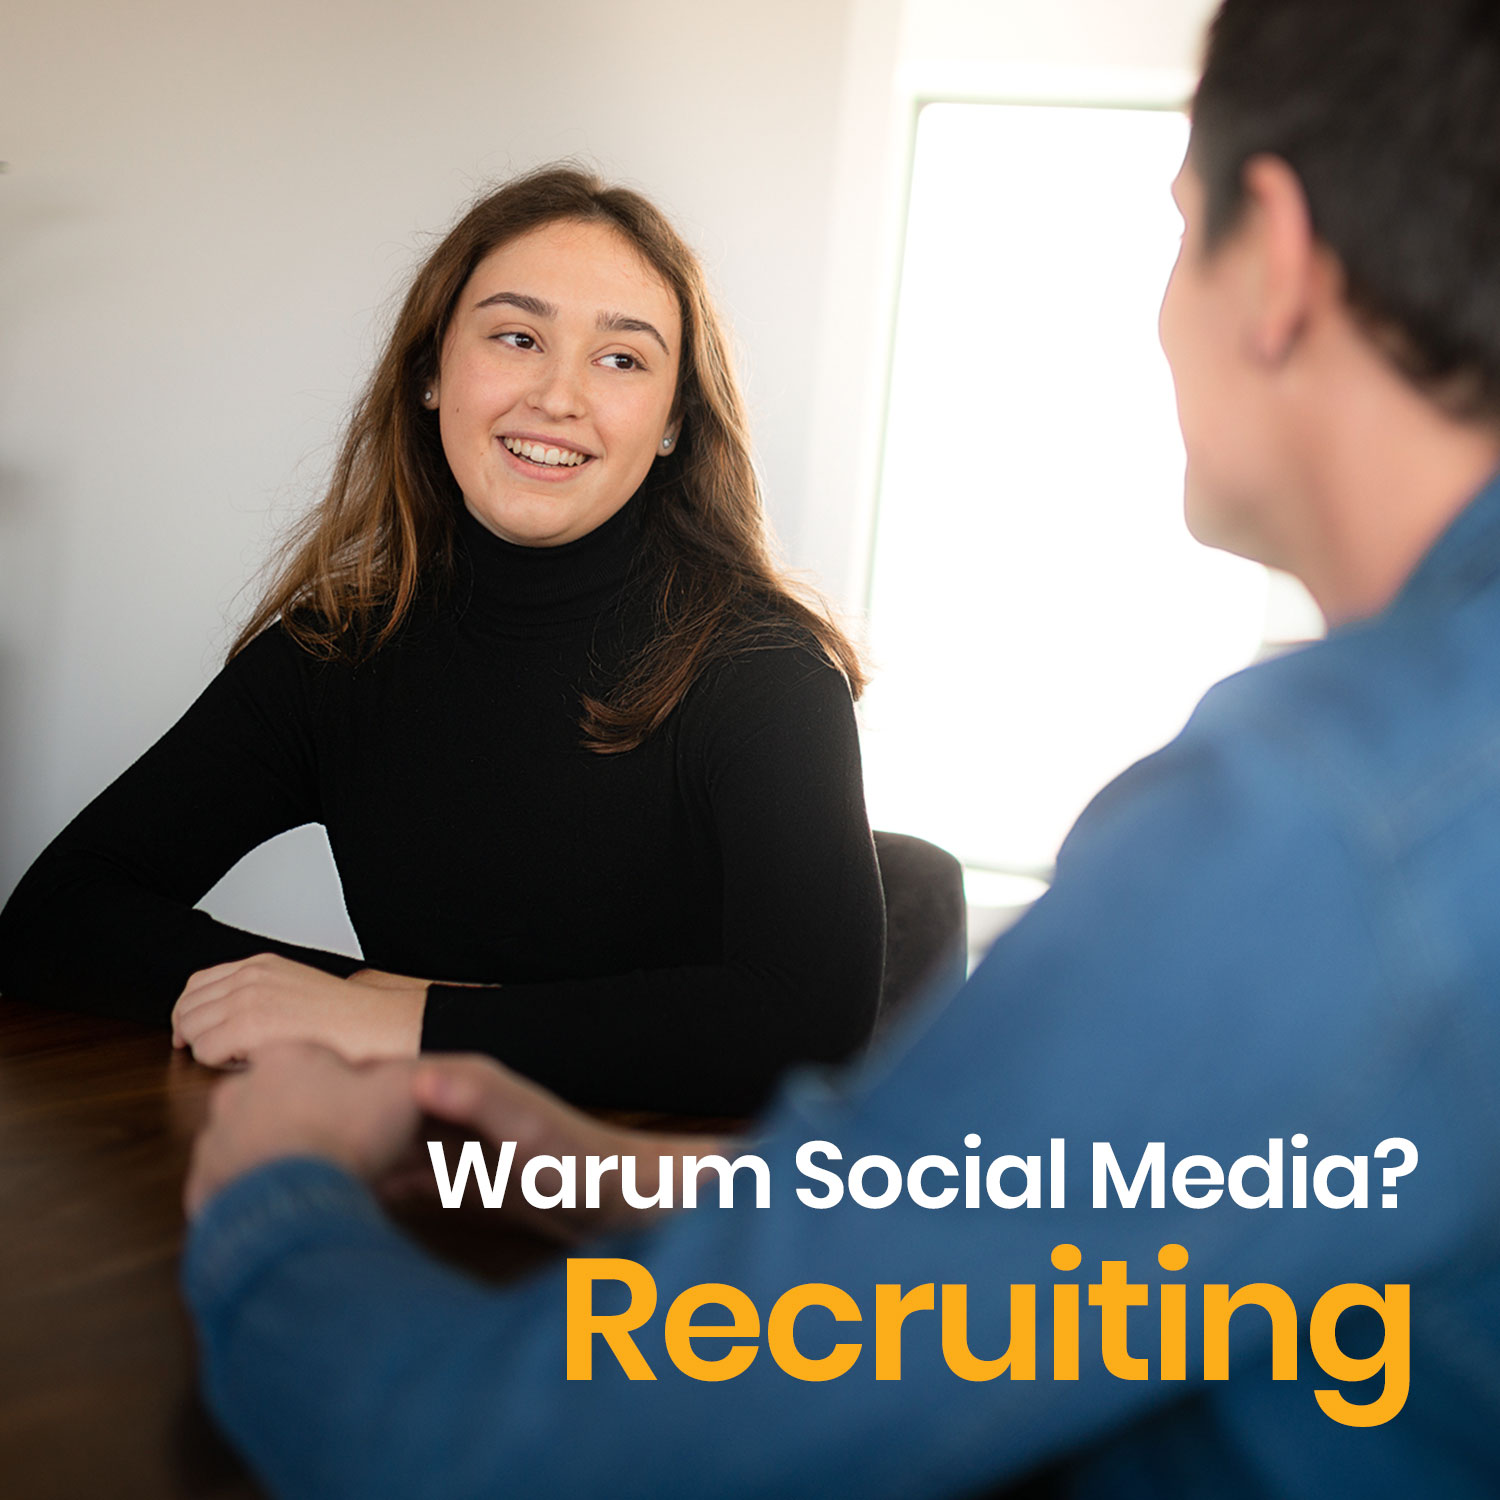 Warum Social Media? Recruiting